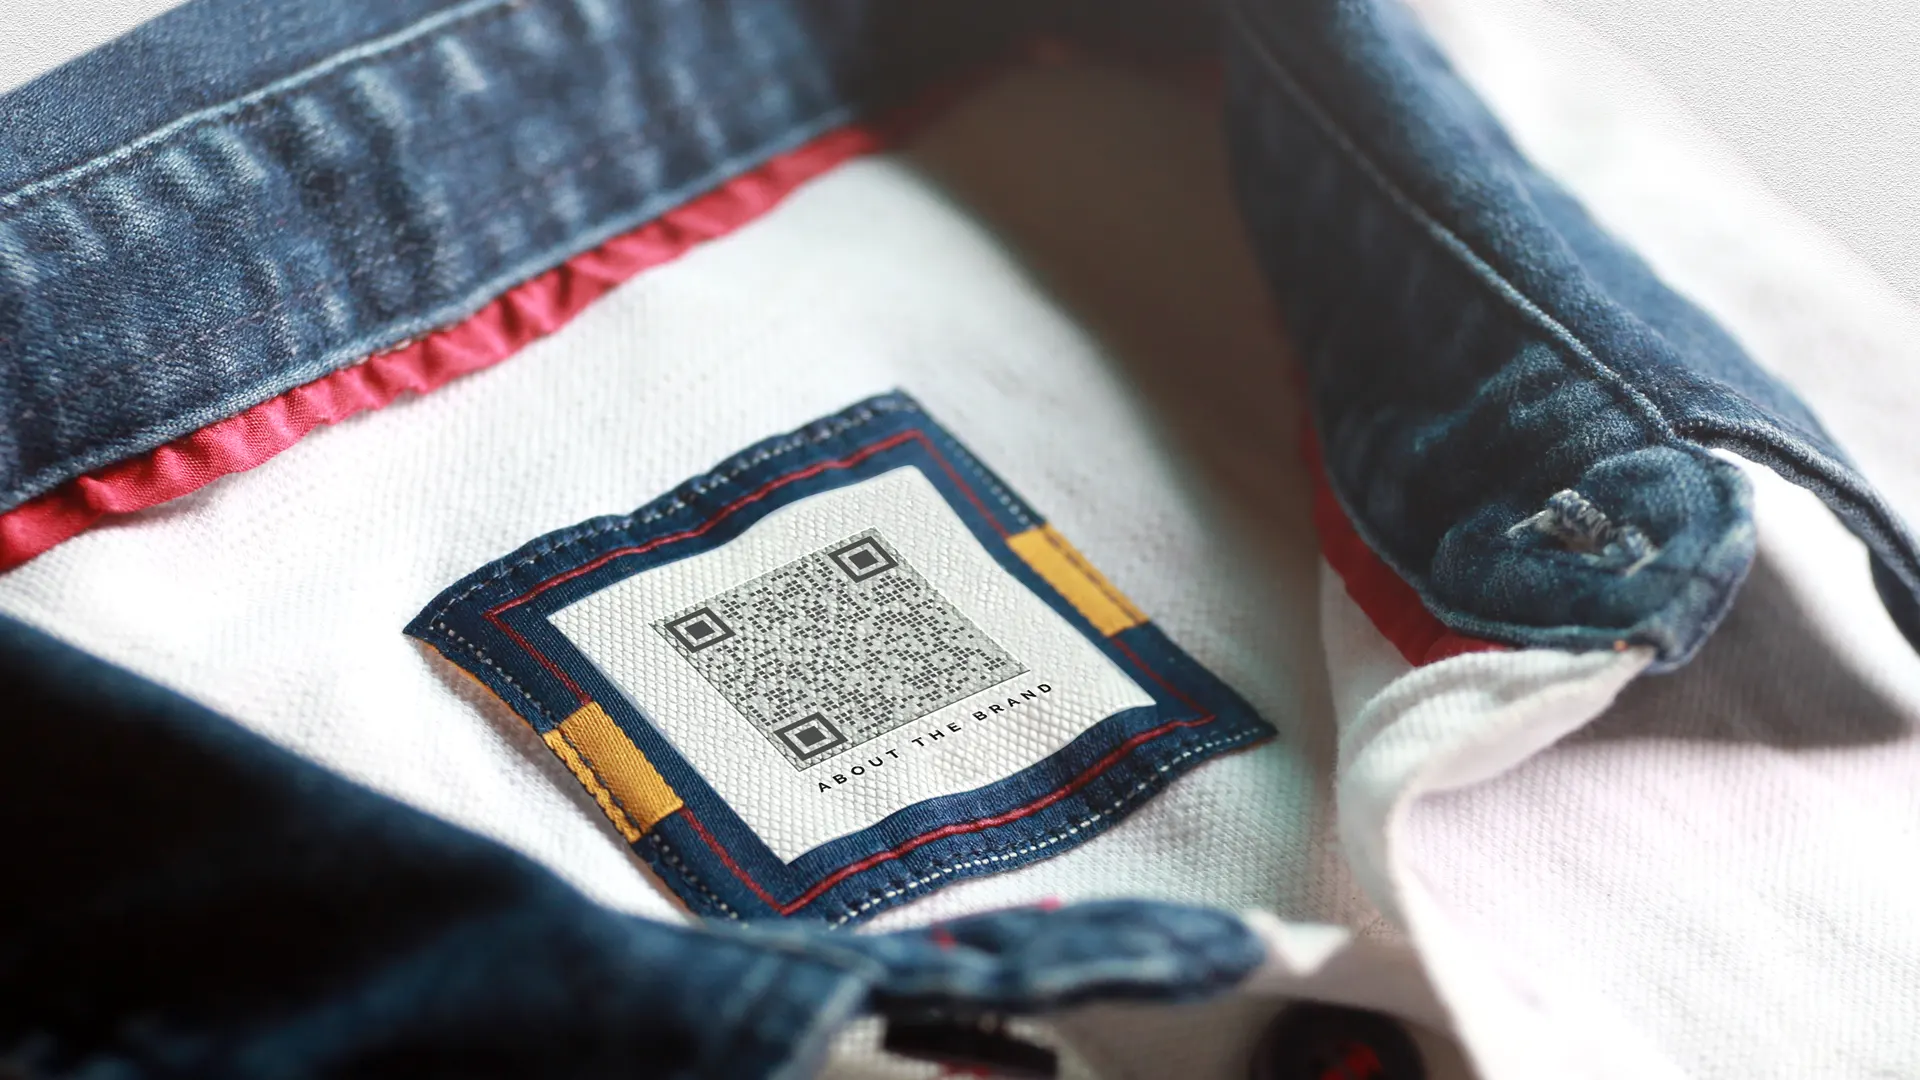 qr codes on clothing brands